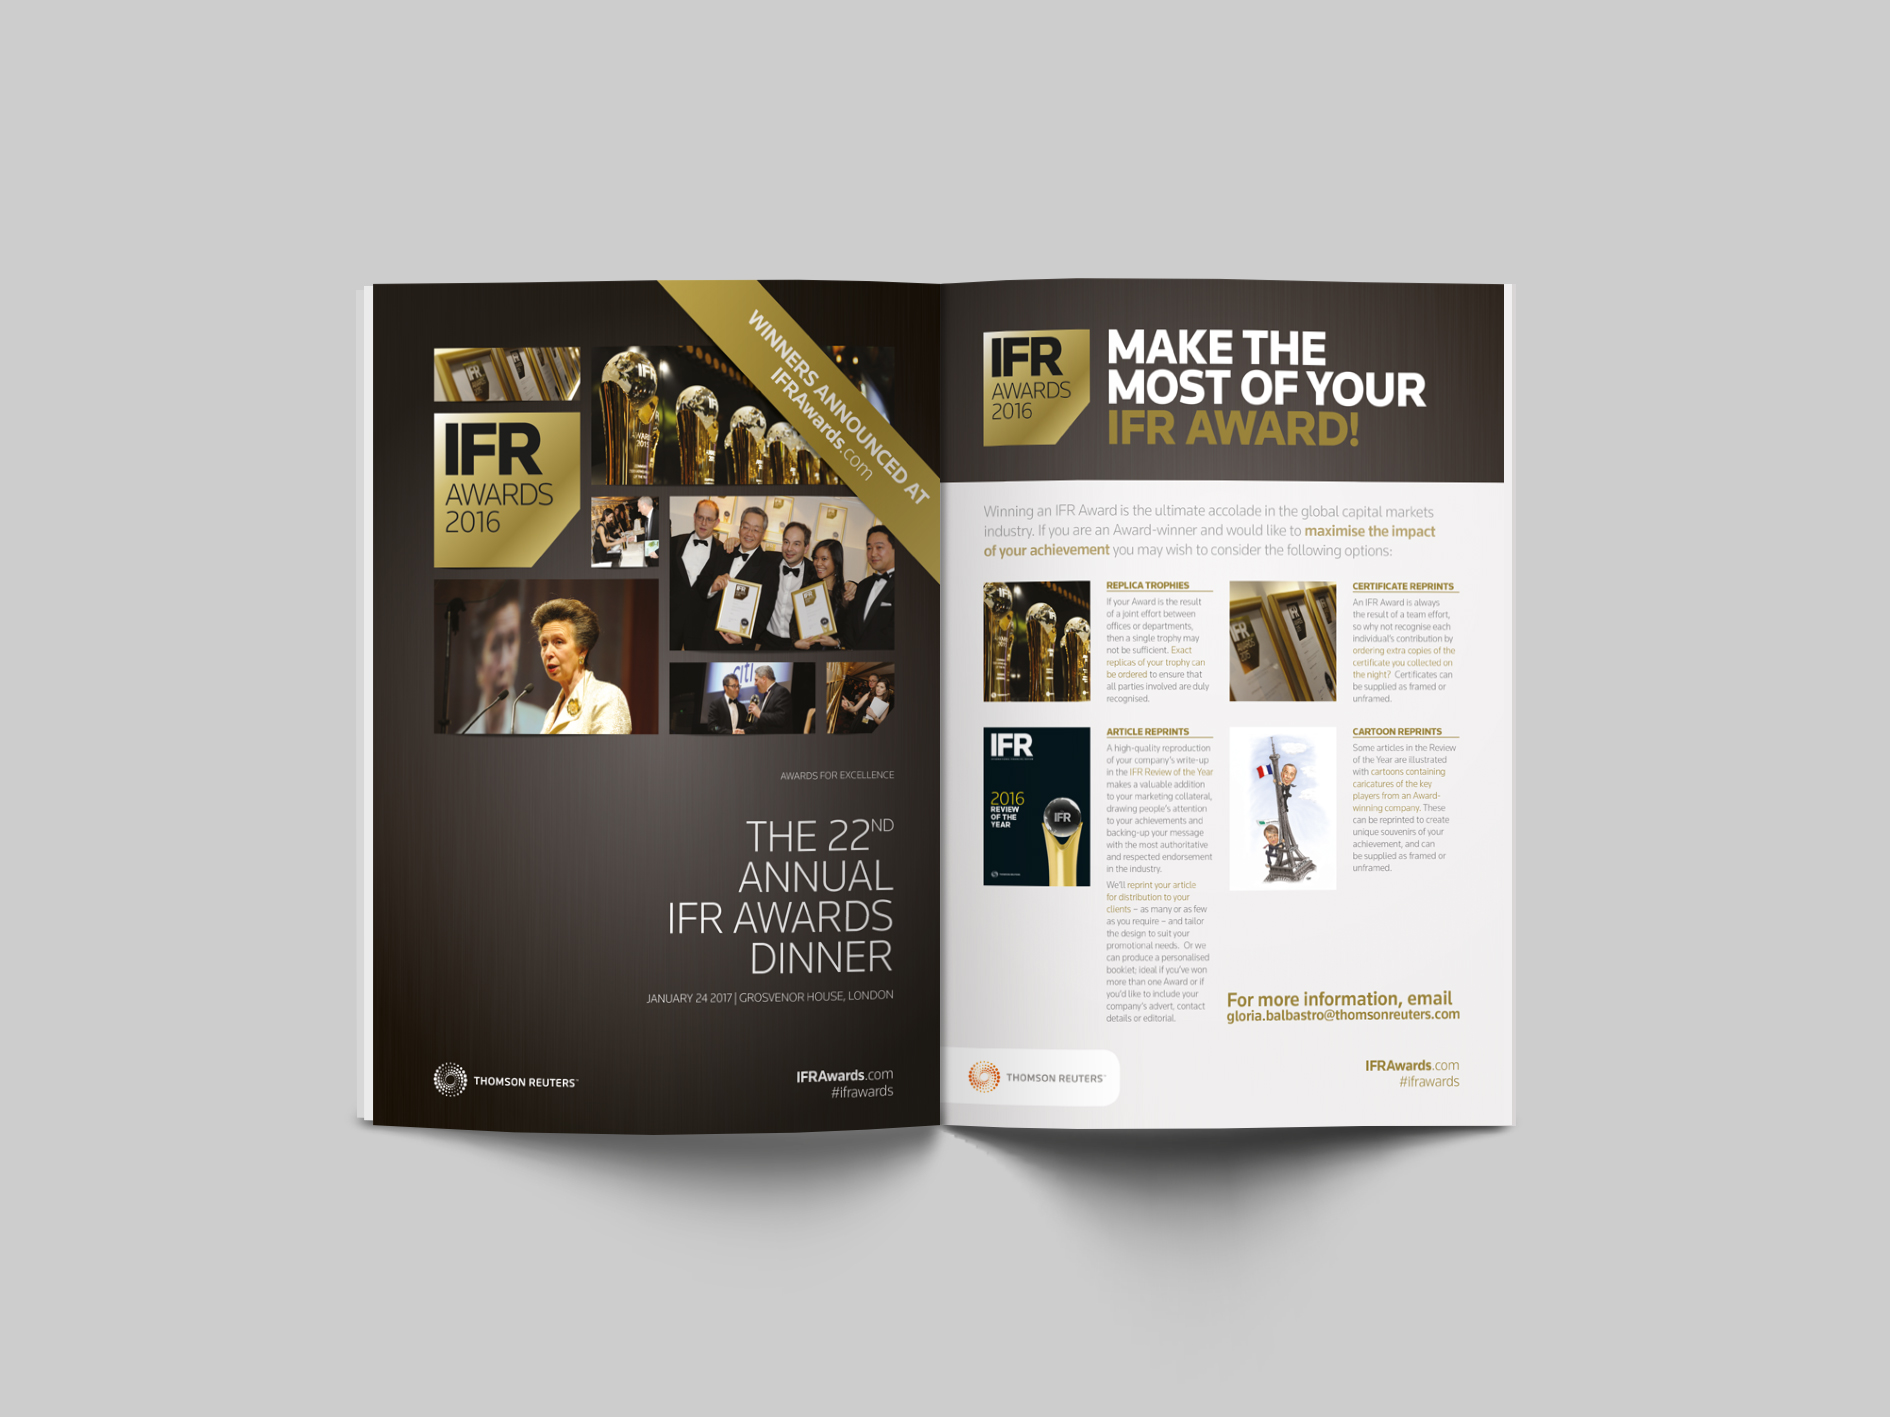 Over the past 10 years minx design has worked with Thomson Reuters. Minx assisted in the production of design, artwork and print to help promoted their printed publications, online publications, conferences and forums including continuing to work on the marketing of their annual Award ceremonies.